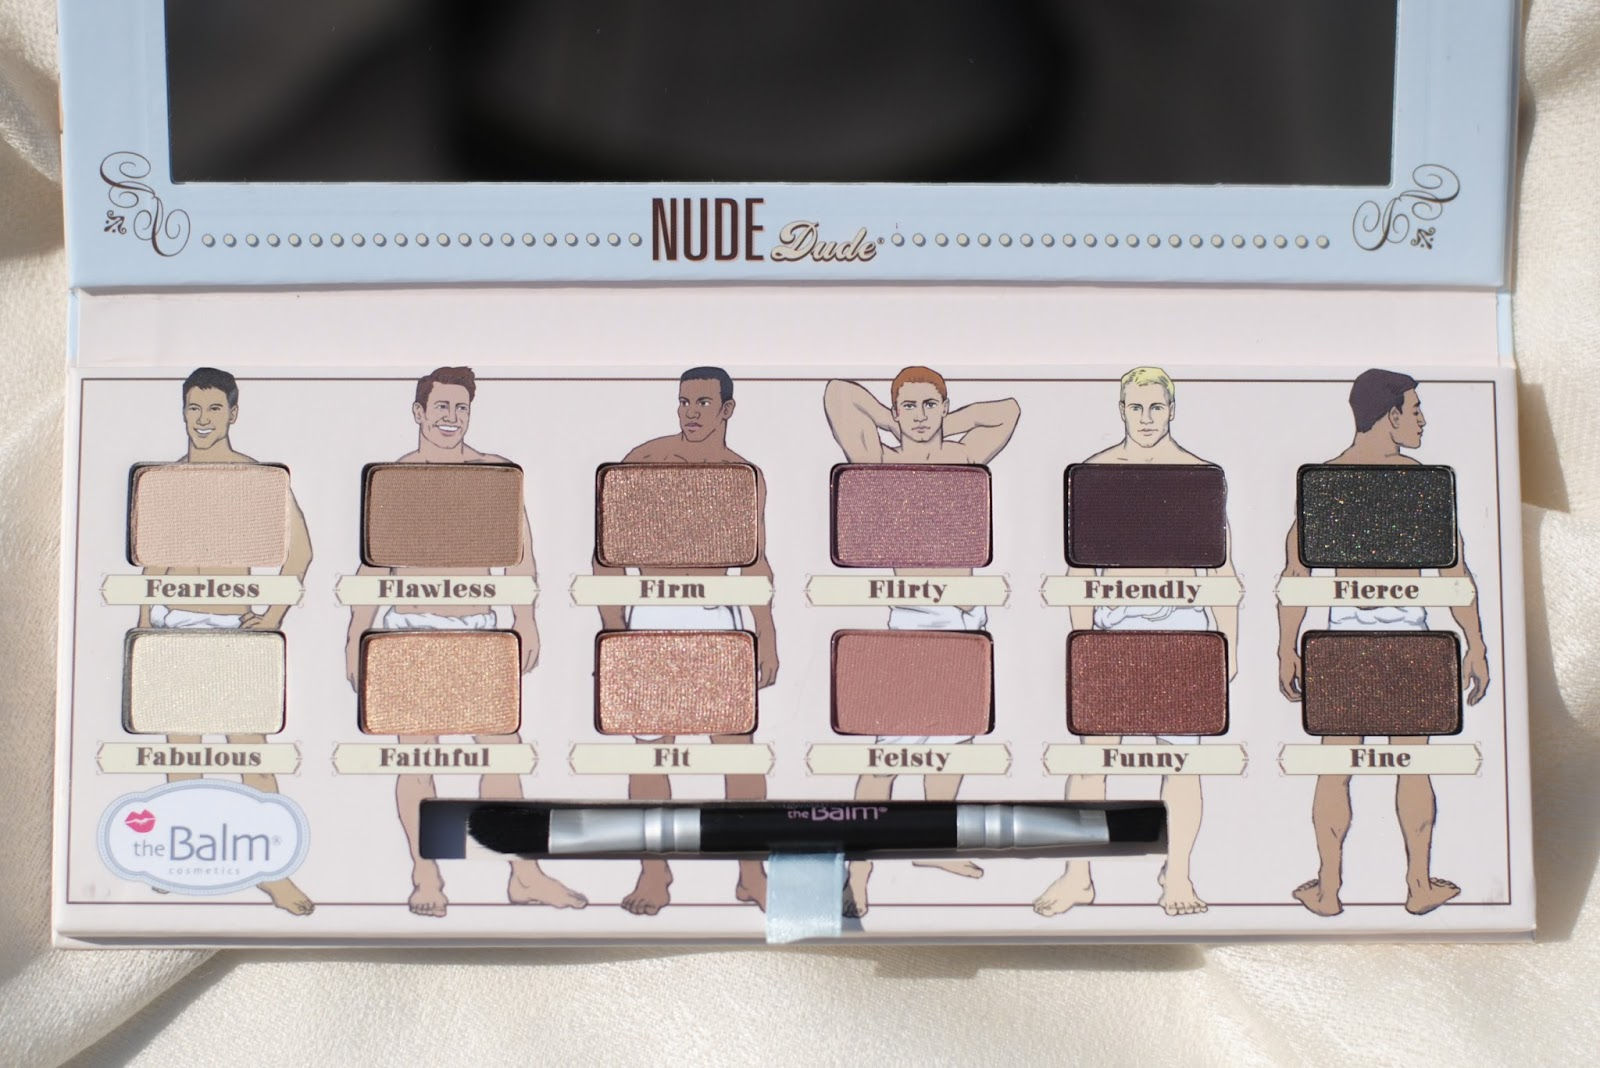 the balm nude dude fearless flawless firm flirty friendly fierce fabulous faithful fit feisty funny fine